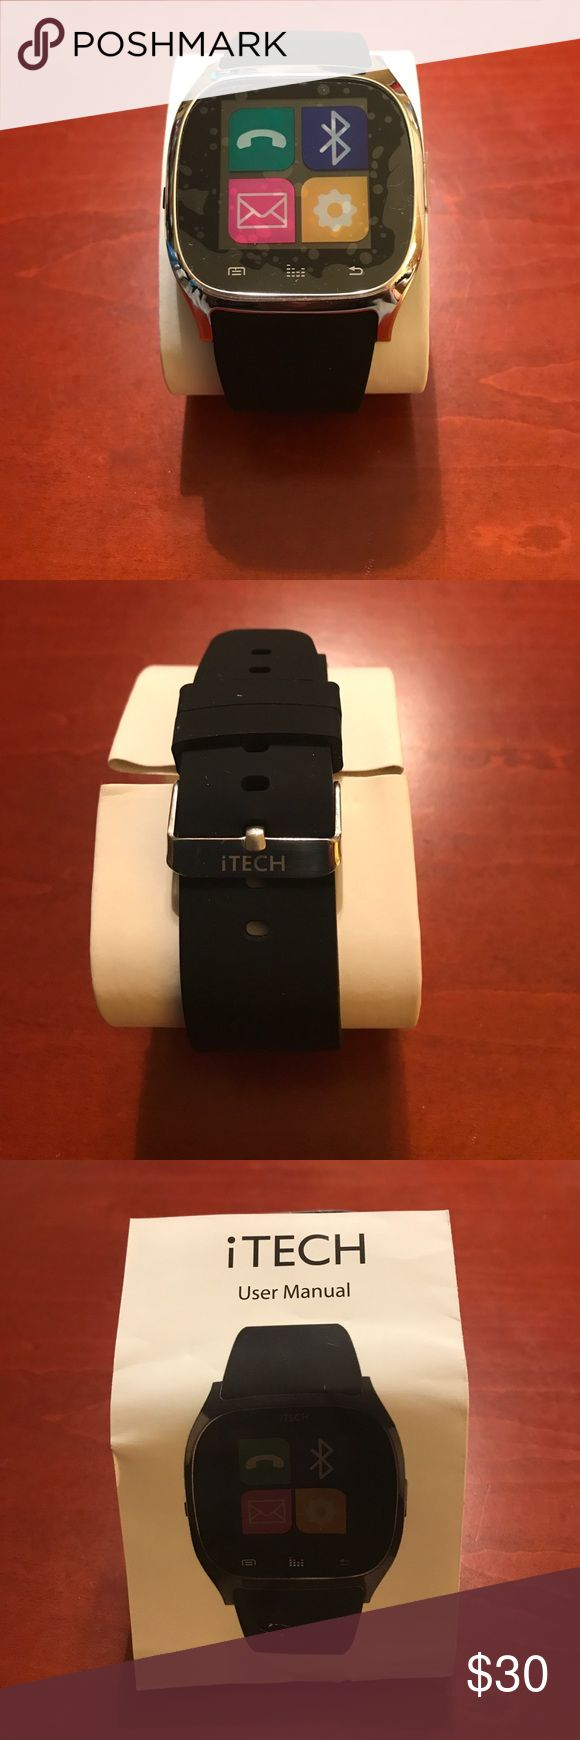 iTech SmartWatch 3260 SmartWatch , black, silver, rubber adjustable band and is compatible with iPhone/Android. The iTech apps include : Bluetooth, phone book, dialer, messaging, call logs, notifier, music, camera remote, phone, settings, anti lost, alarm, stopwatch pedometer, sedentary reminder, and calculator. iTech Jewelry